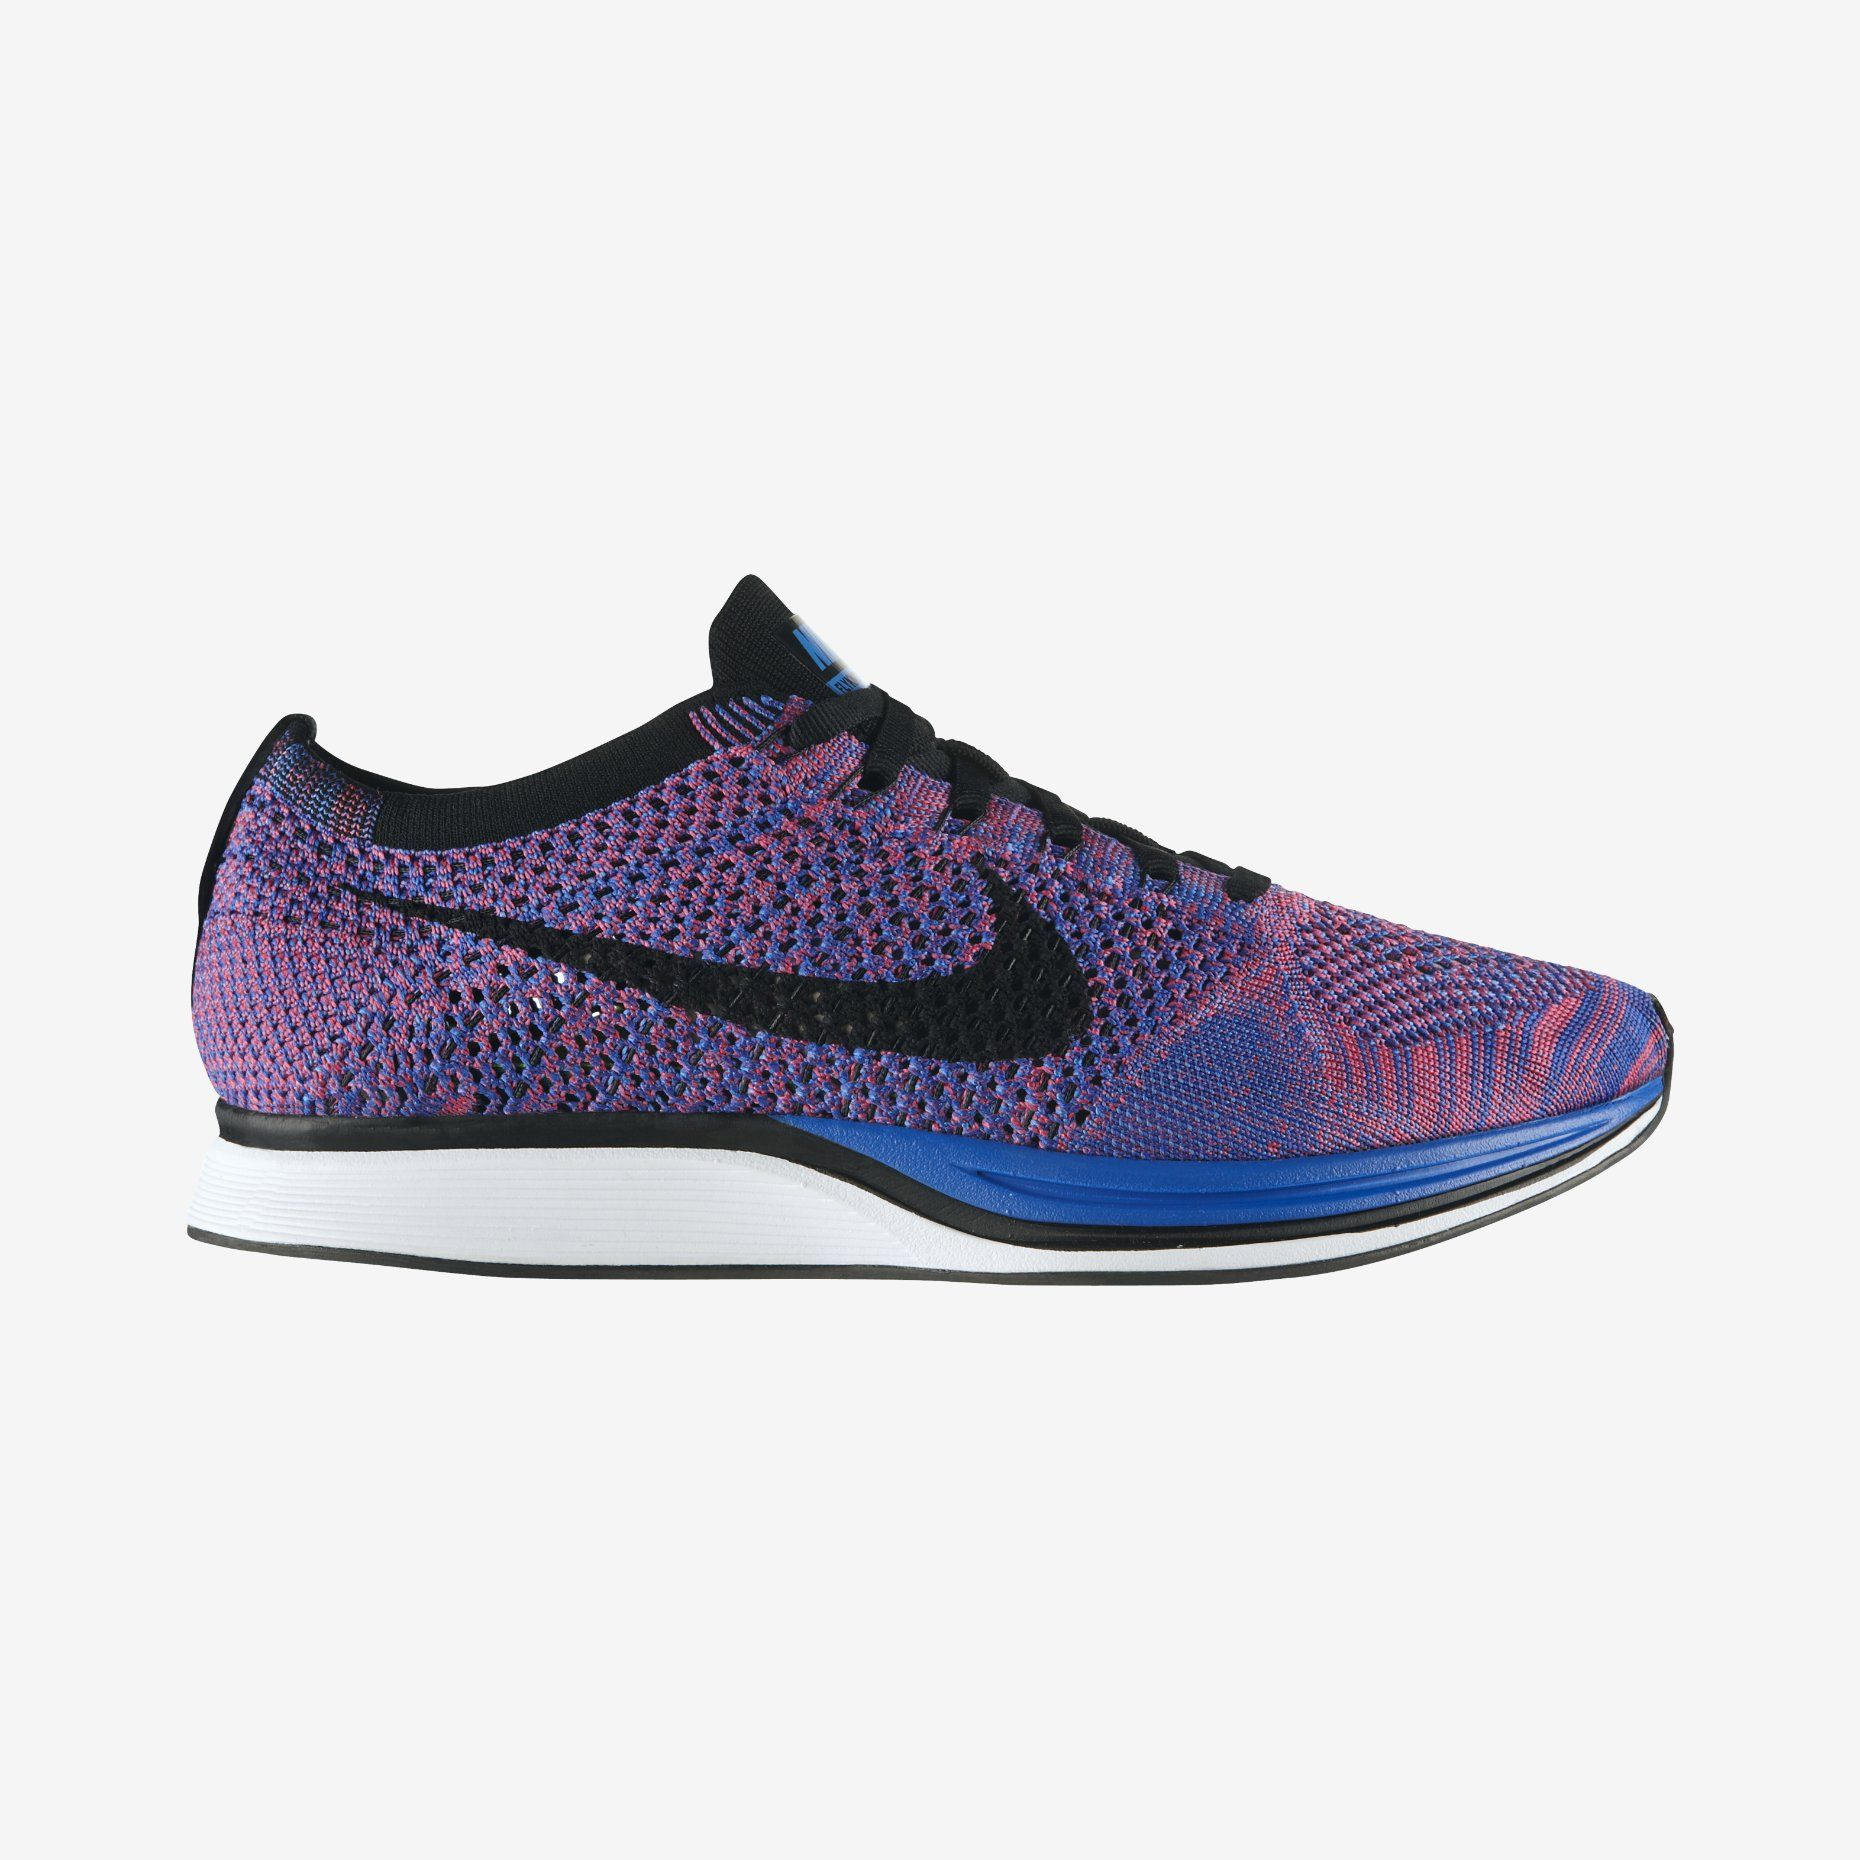 the latest 9838c 11454 Nike Flyknit Racer Unisex Running Shoe (Men s Sizing). Nike Store